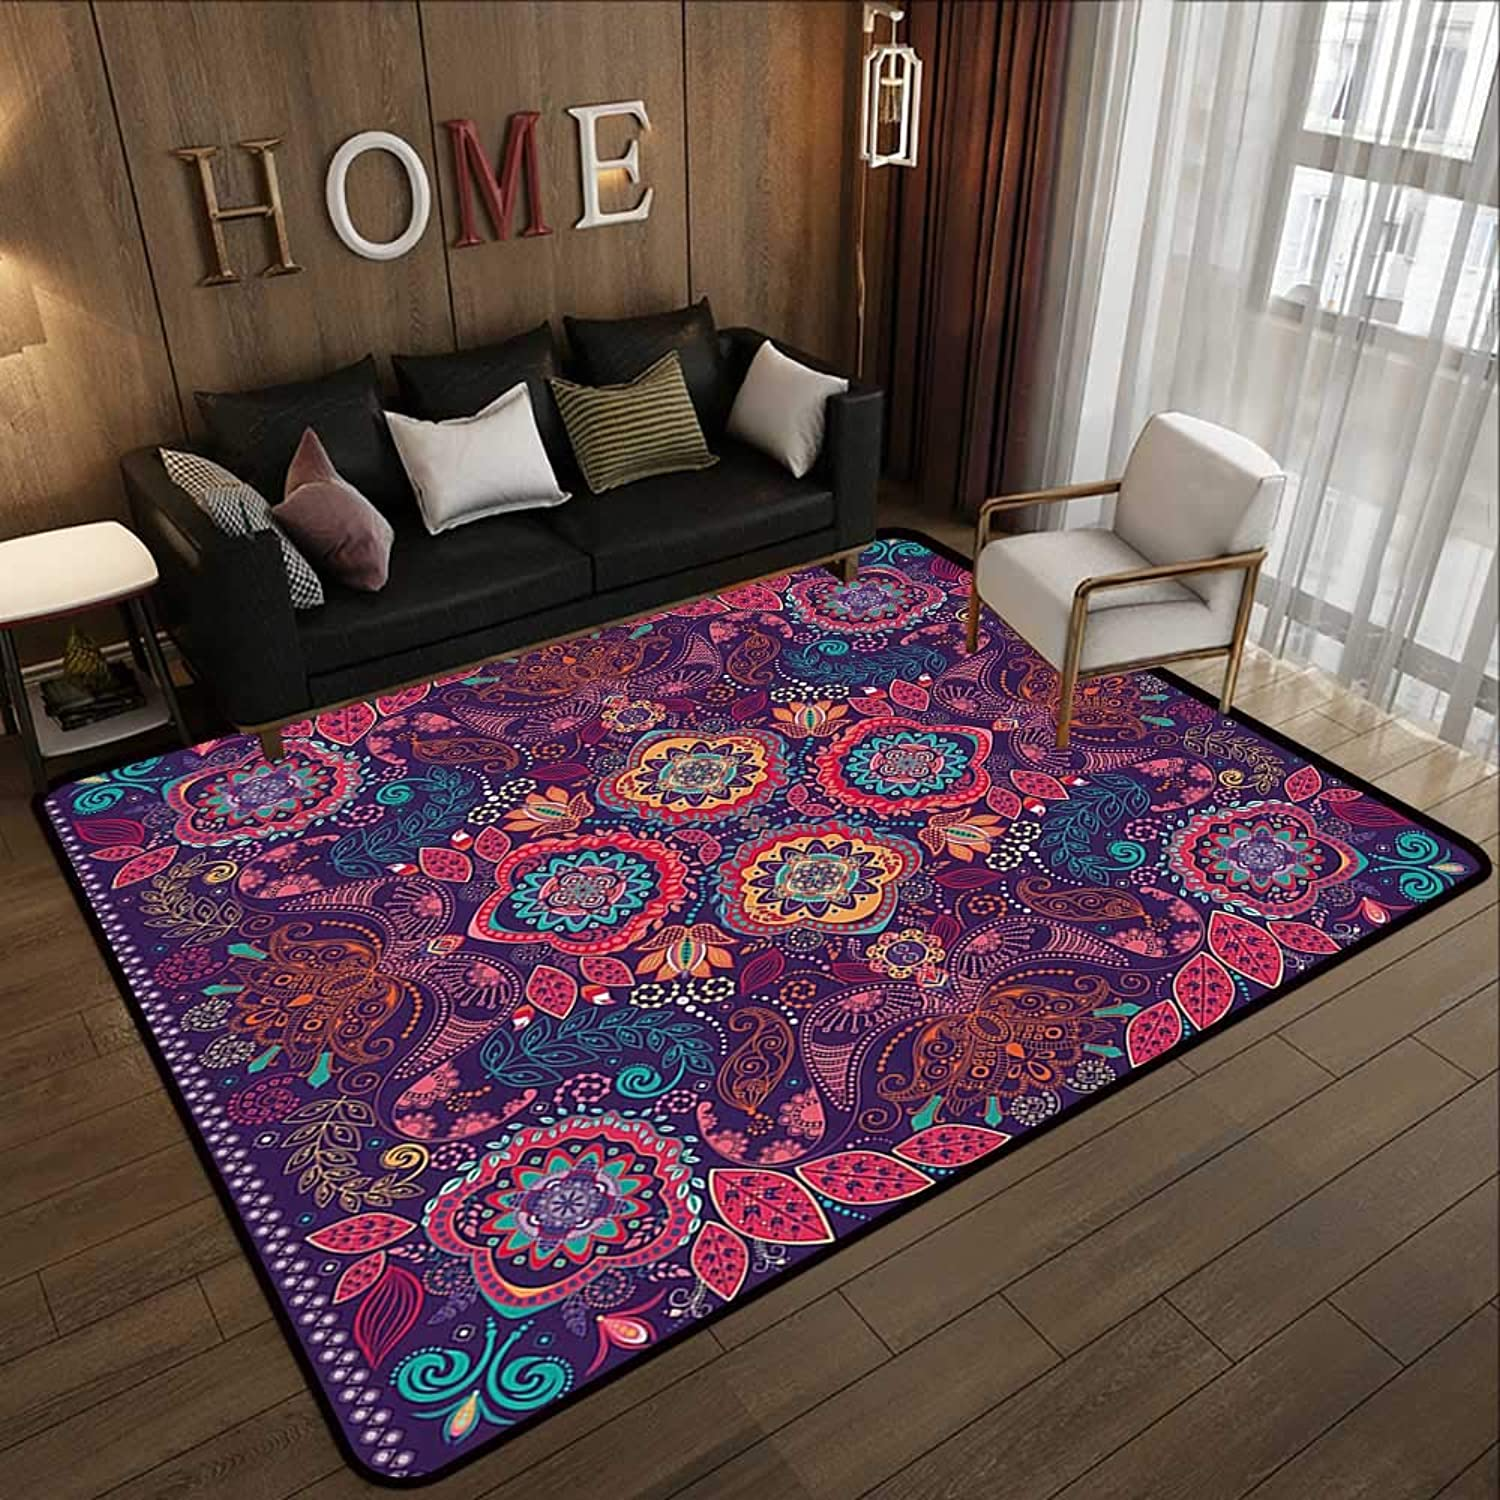 Carpet mat,Paisley,Modern Classic Ethnic Asian Design with Dots Leaves and Flowers Artistic Print,Multicolor 35 x 59  Floor Mat Entrance Doormat